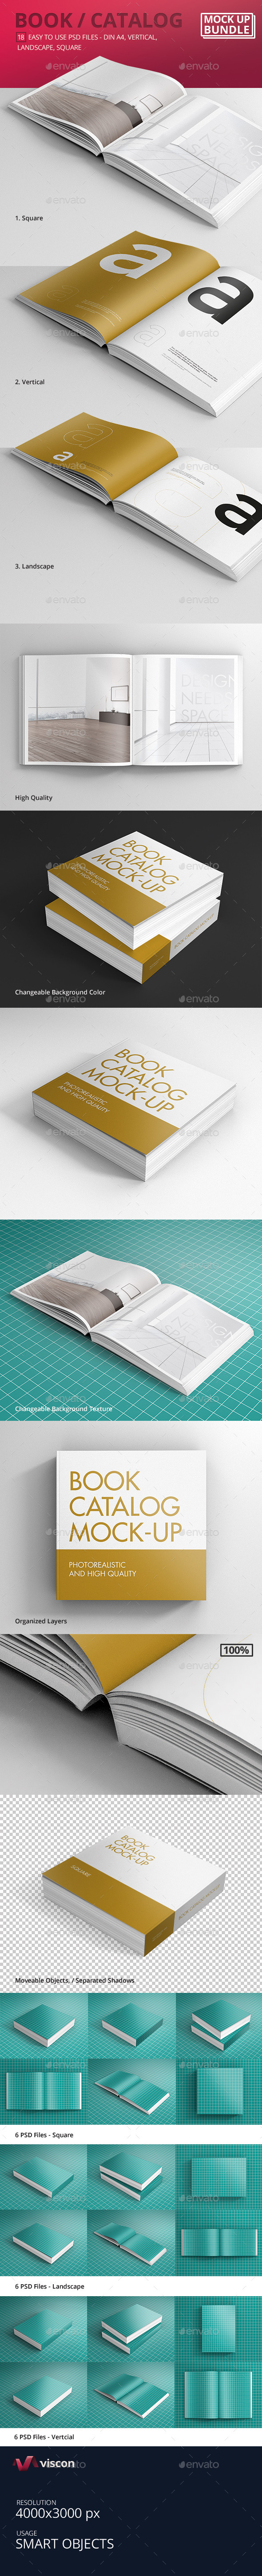 Book / Catalog Mock-Ups Bundle - Books Print